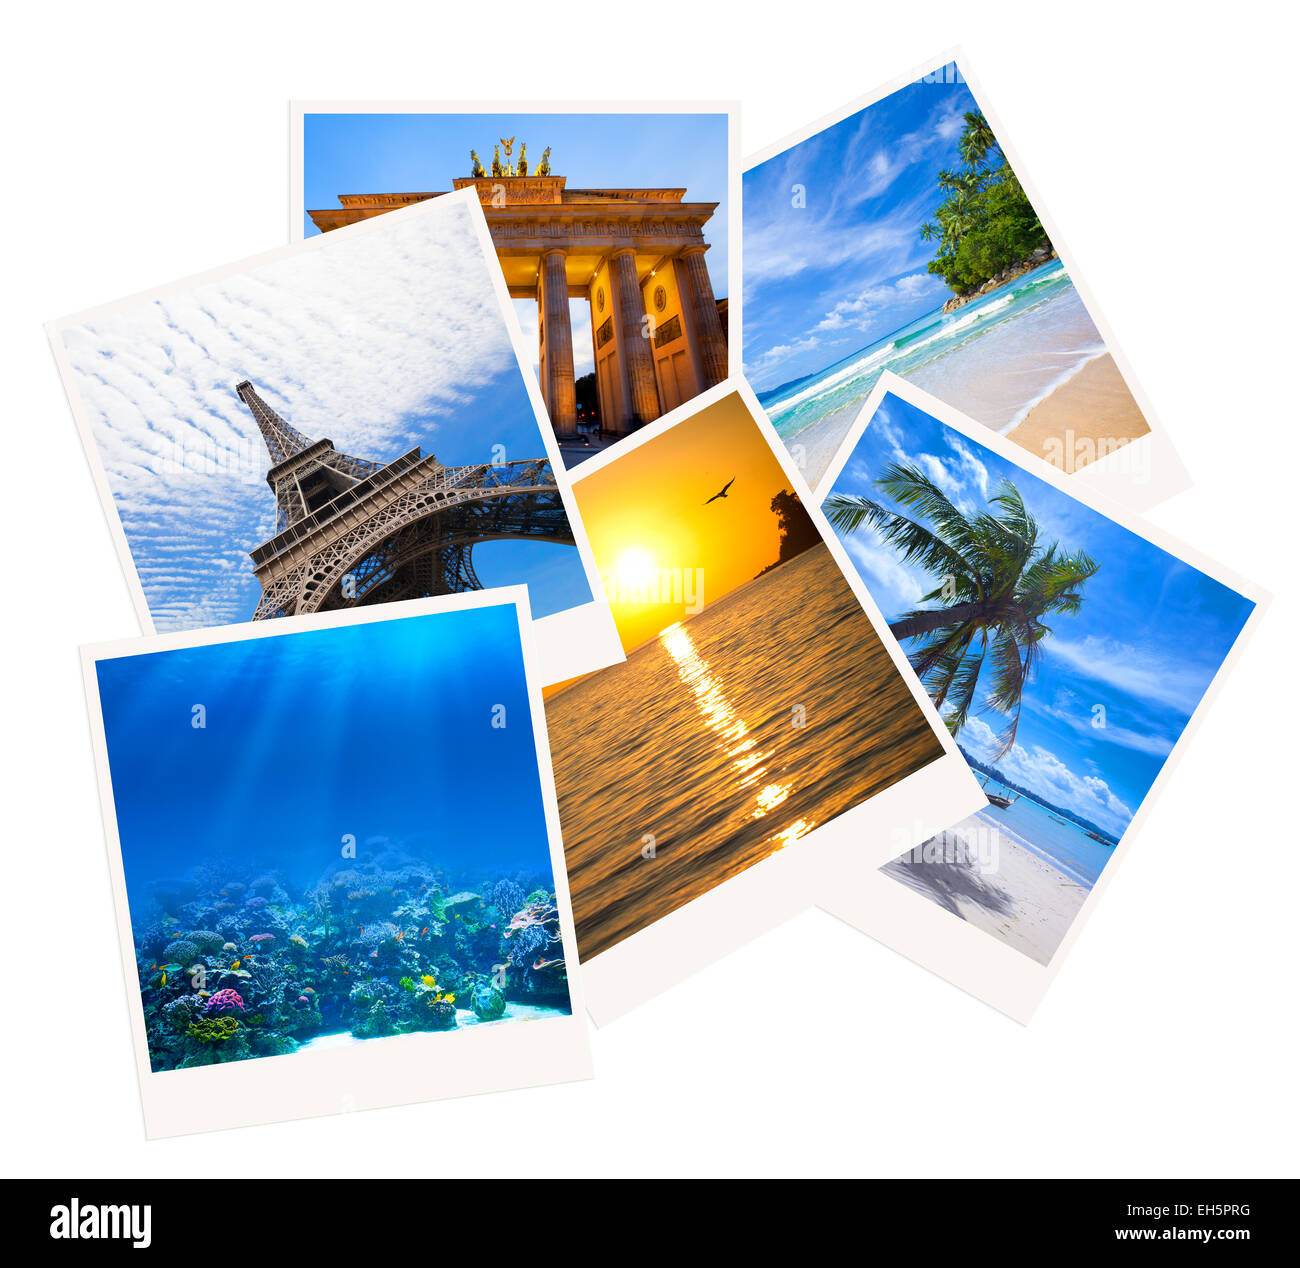 Various travel photo collage isolated on white background - Stock Image